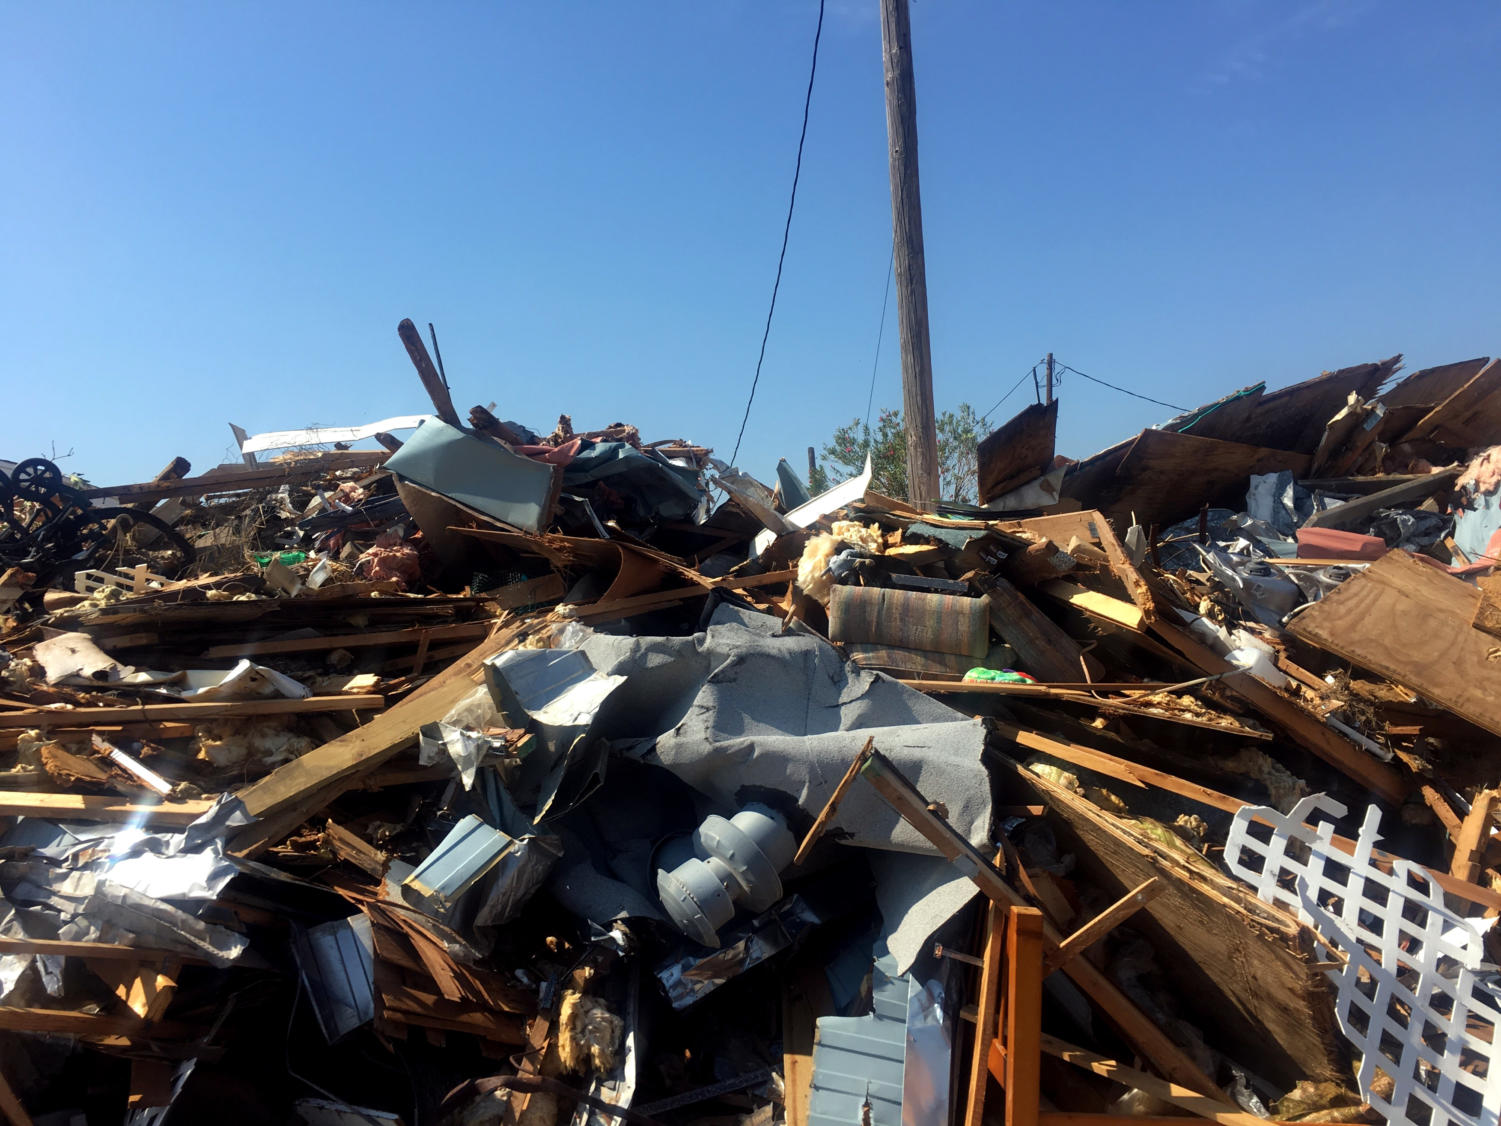 Hurricane Harvey left many piles of debris, such as this one in Port Aransas on Aug. 26, the day after the 130 mph storm hit. Flour Bluff sophomore Shelby Gallegos, a Port Aransas resident, said that this pile was one of the largest near her home, the Island RV Park.